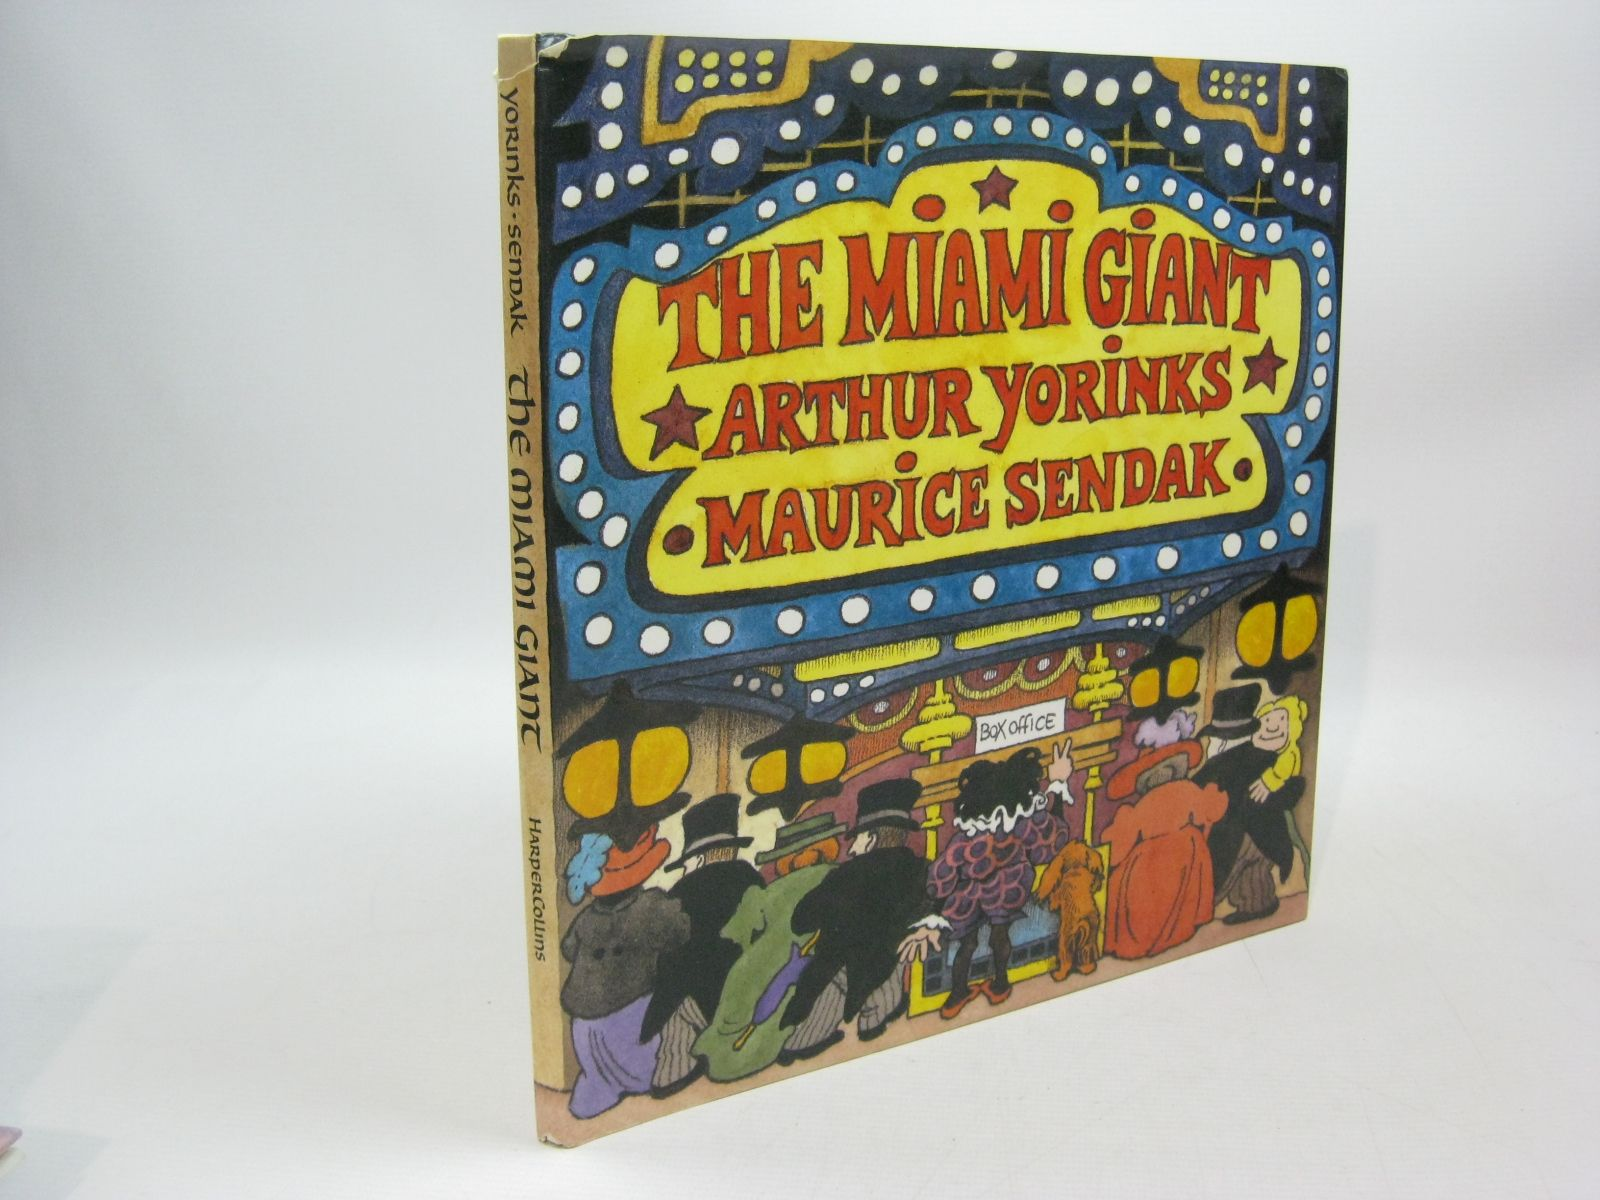 Photo of THE MIAMI GIANT written by Yorinks, Arthur illustrated by Sendak, Maurice published by Harper Collins (STOCK CODE: 1504455)  for sale by Stella & Rose's Books